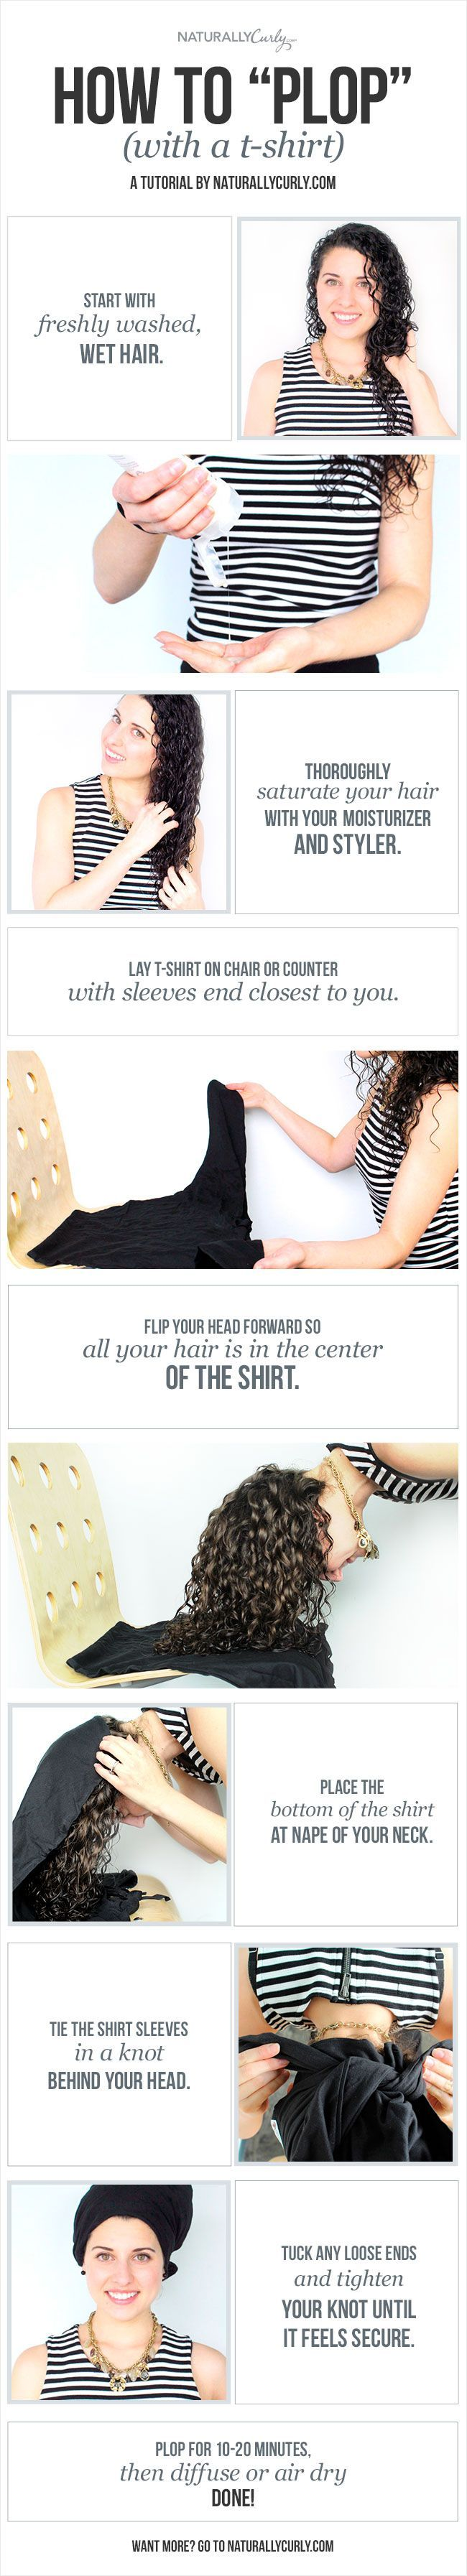 Cut down your air drying time without ruining your curls! - This helps promote v...